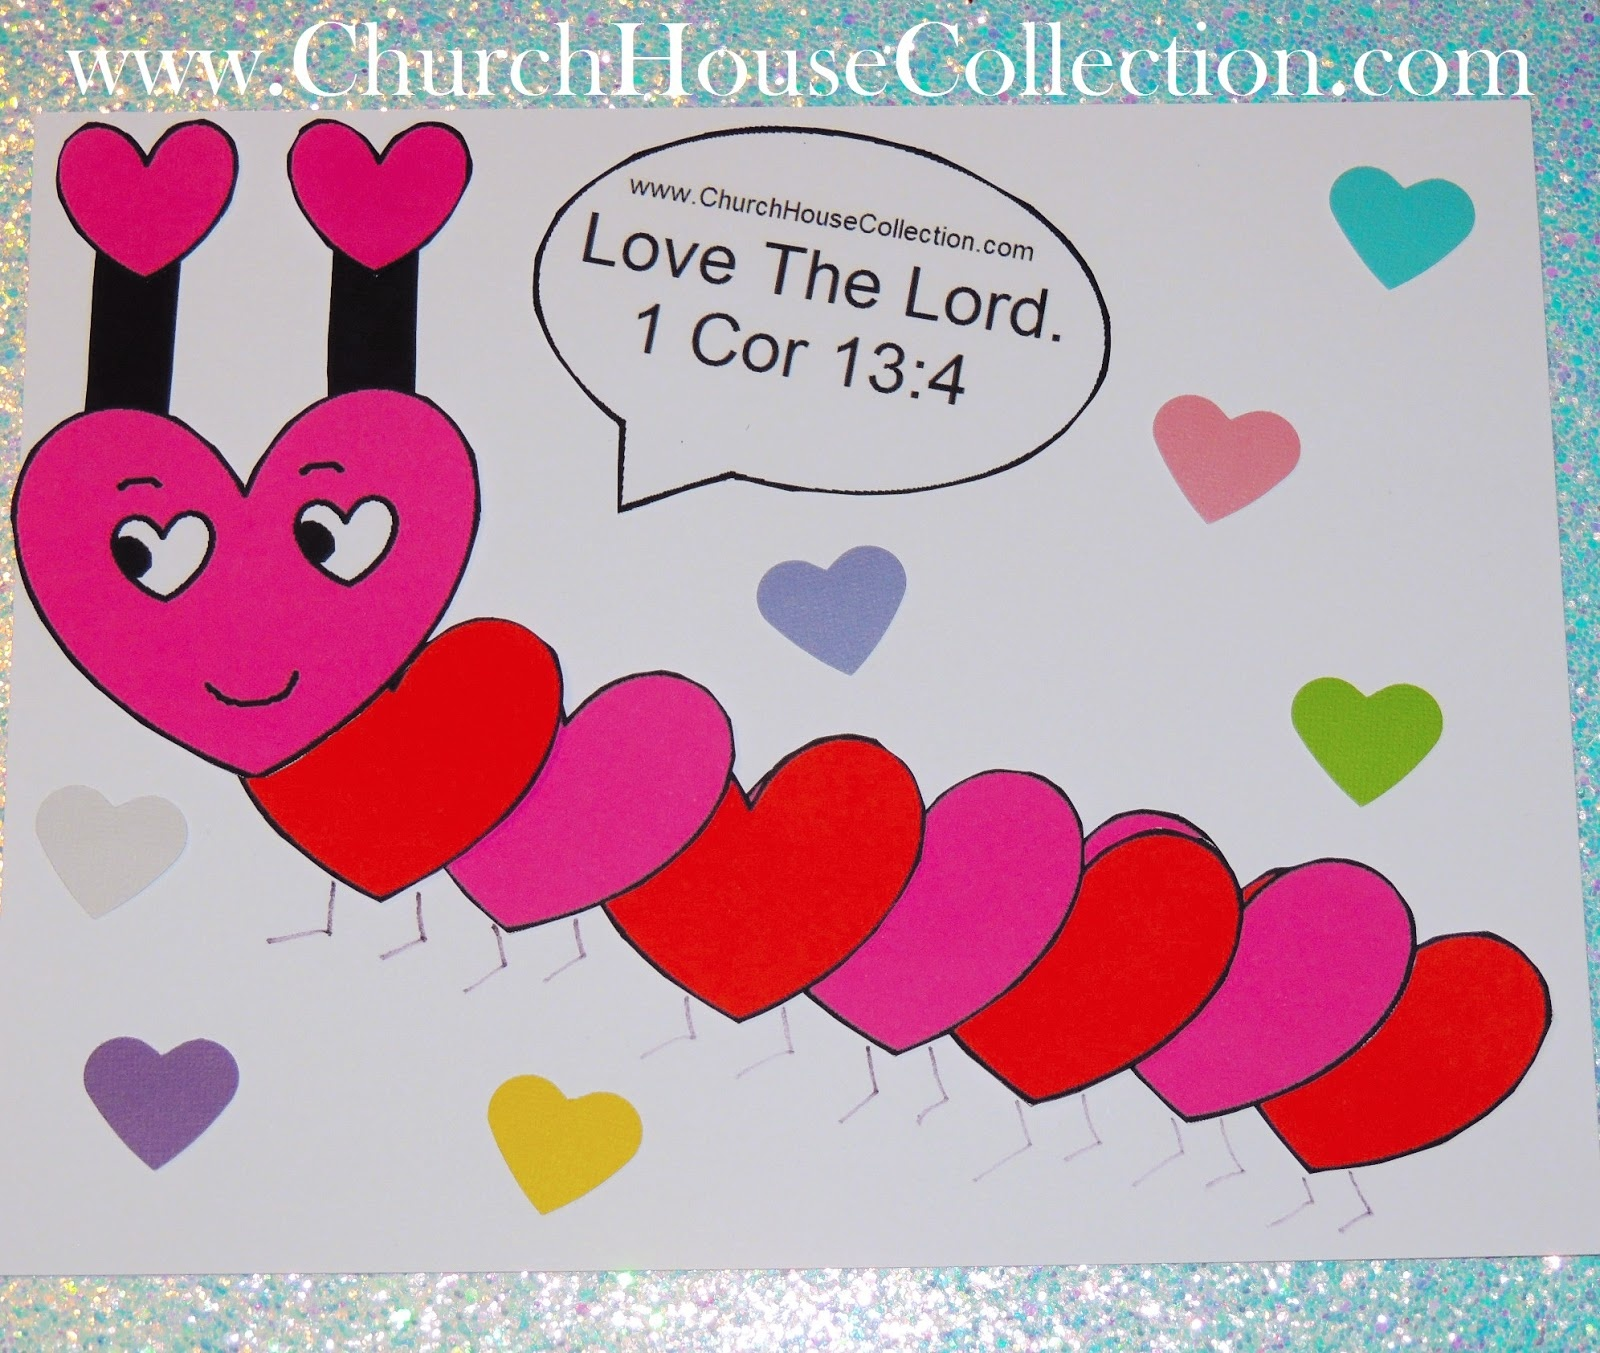 Church House Collection Blog: Heart Caterpillar Valentine's Day - Free Printable Sunday School Crafts